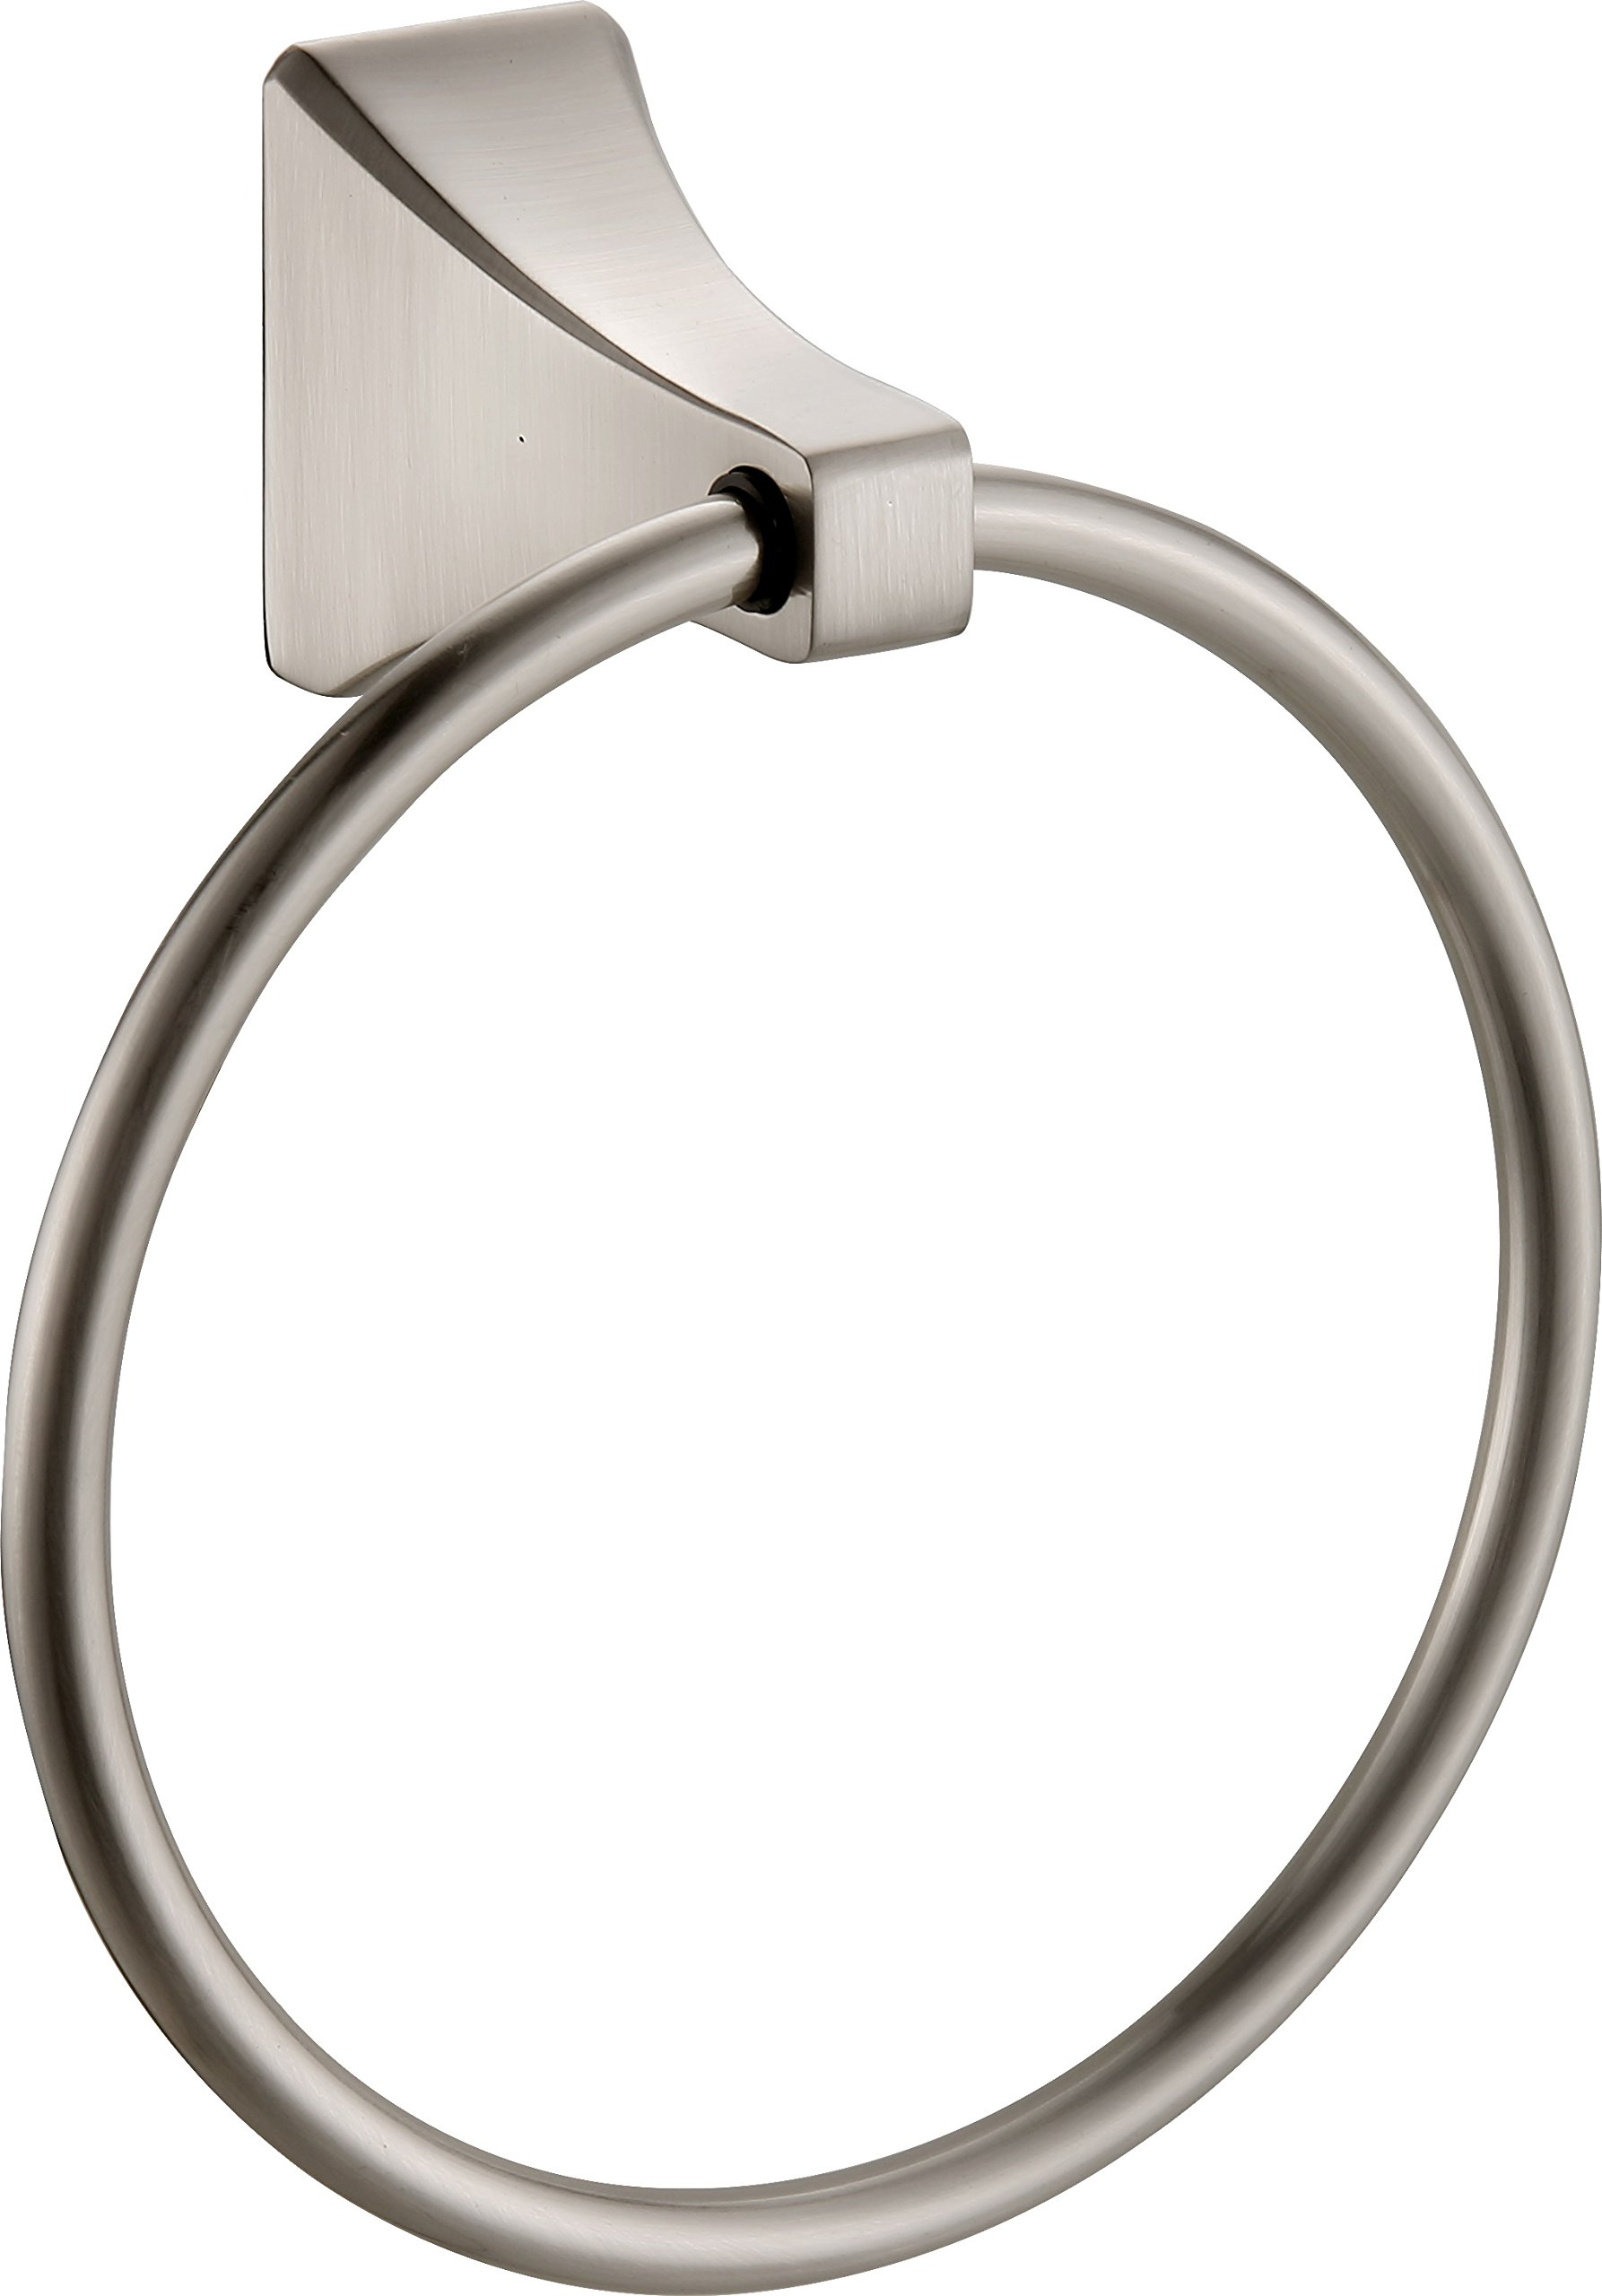 Paradise Bathworks 64028 Shangri-La Towel Ring, Satin Nickel by Paradise Bathworks